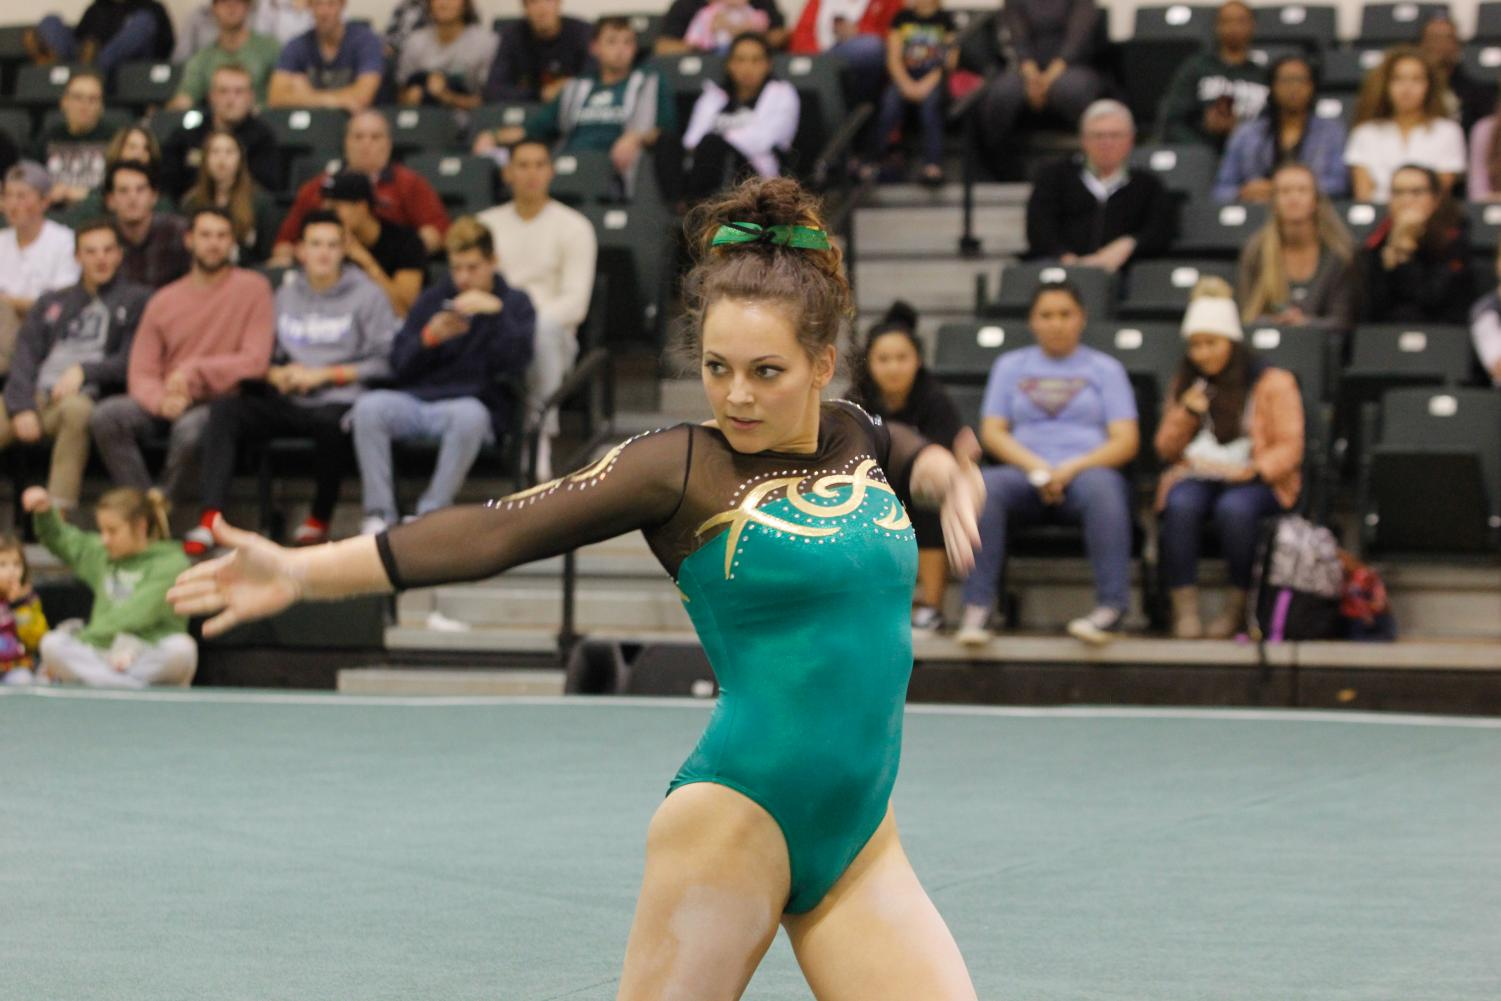 Sacramento State senior gymnast Annie Juarez competes on the floor event on Dec. 8 at Flip Fest.